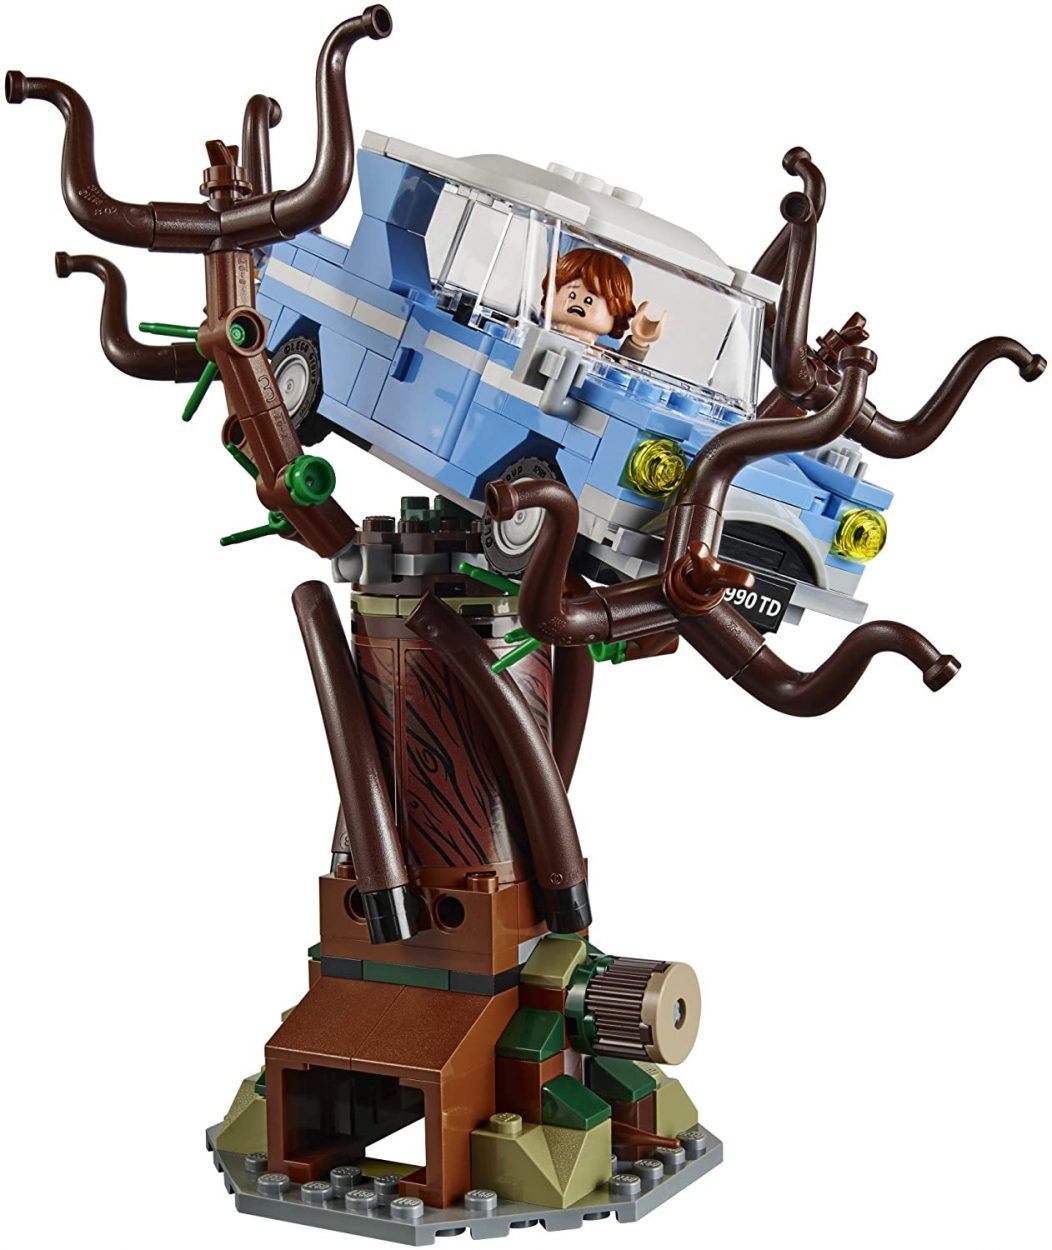 Harry Potter and the Chamber of Secrets Building Kit